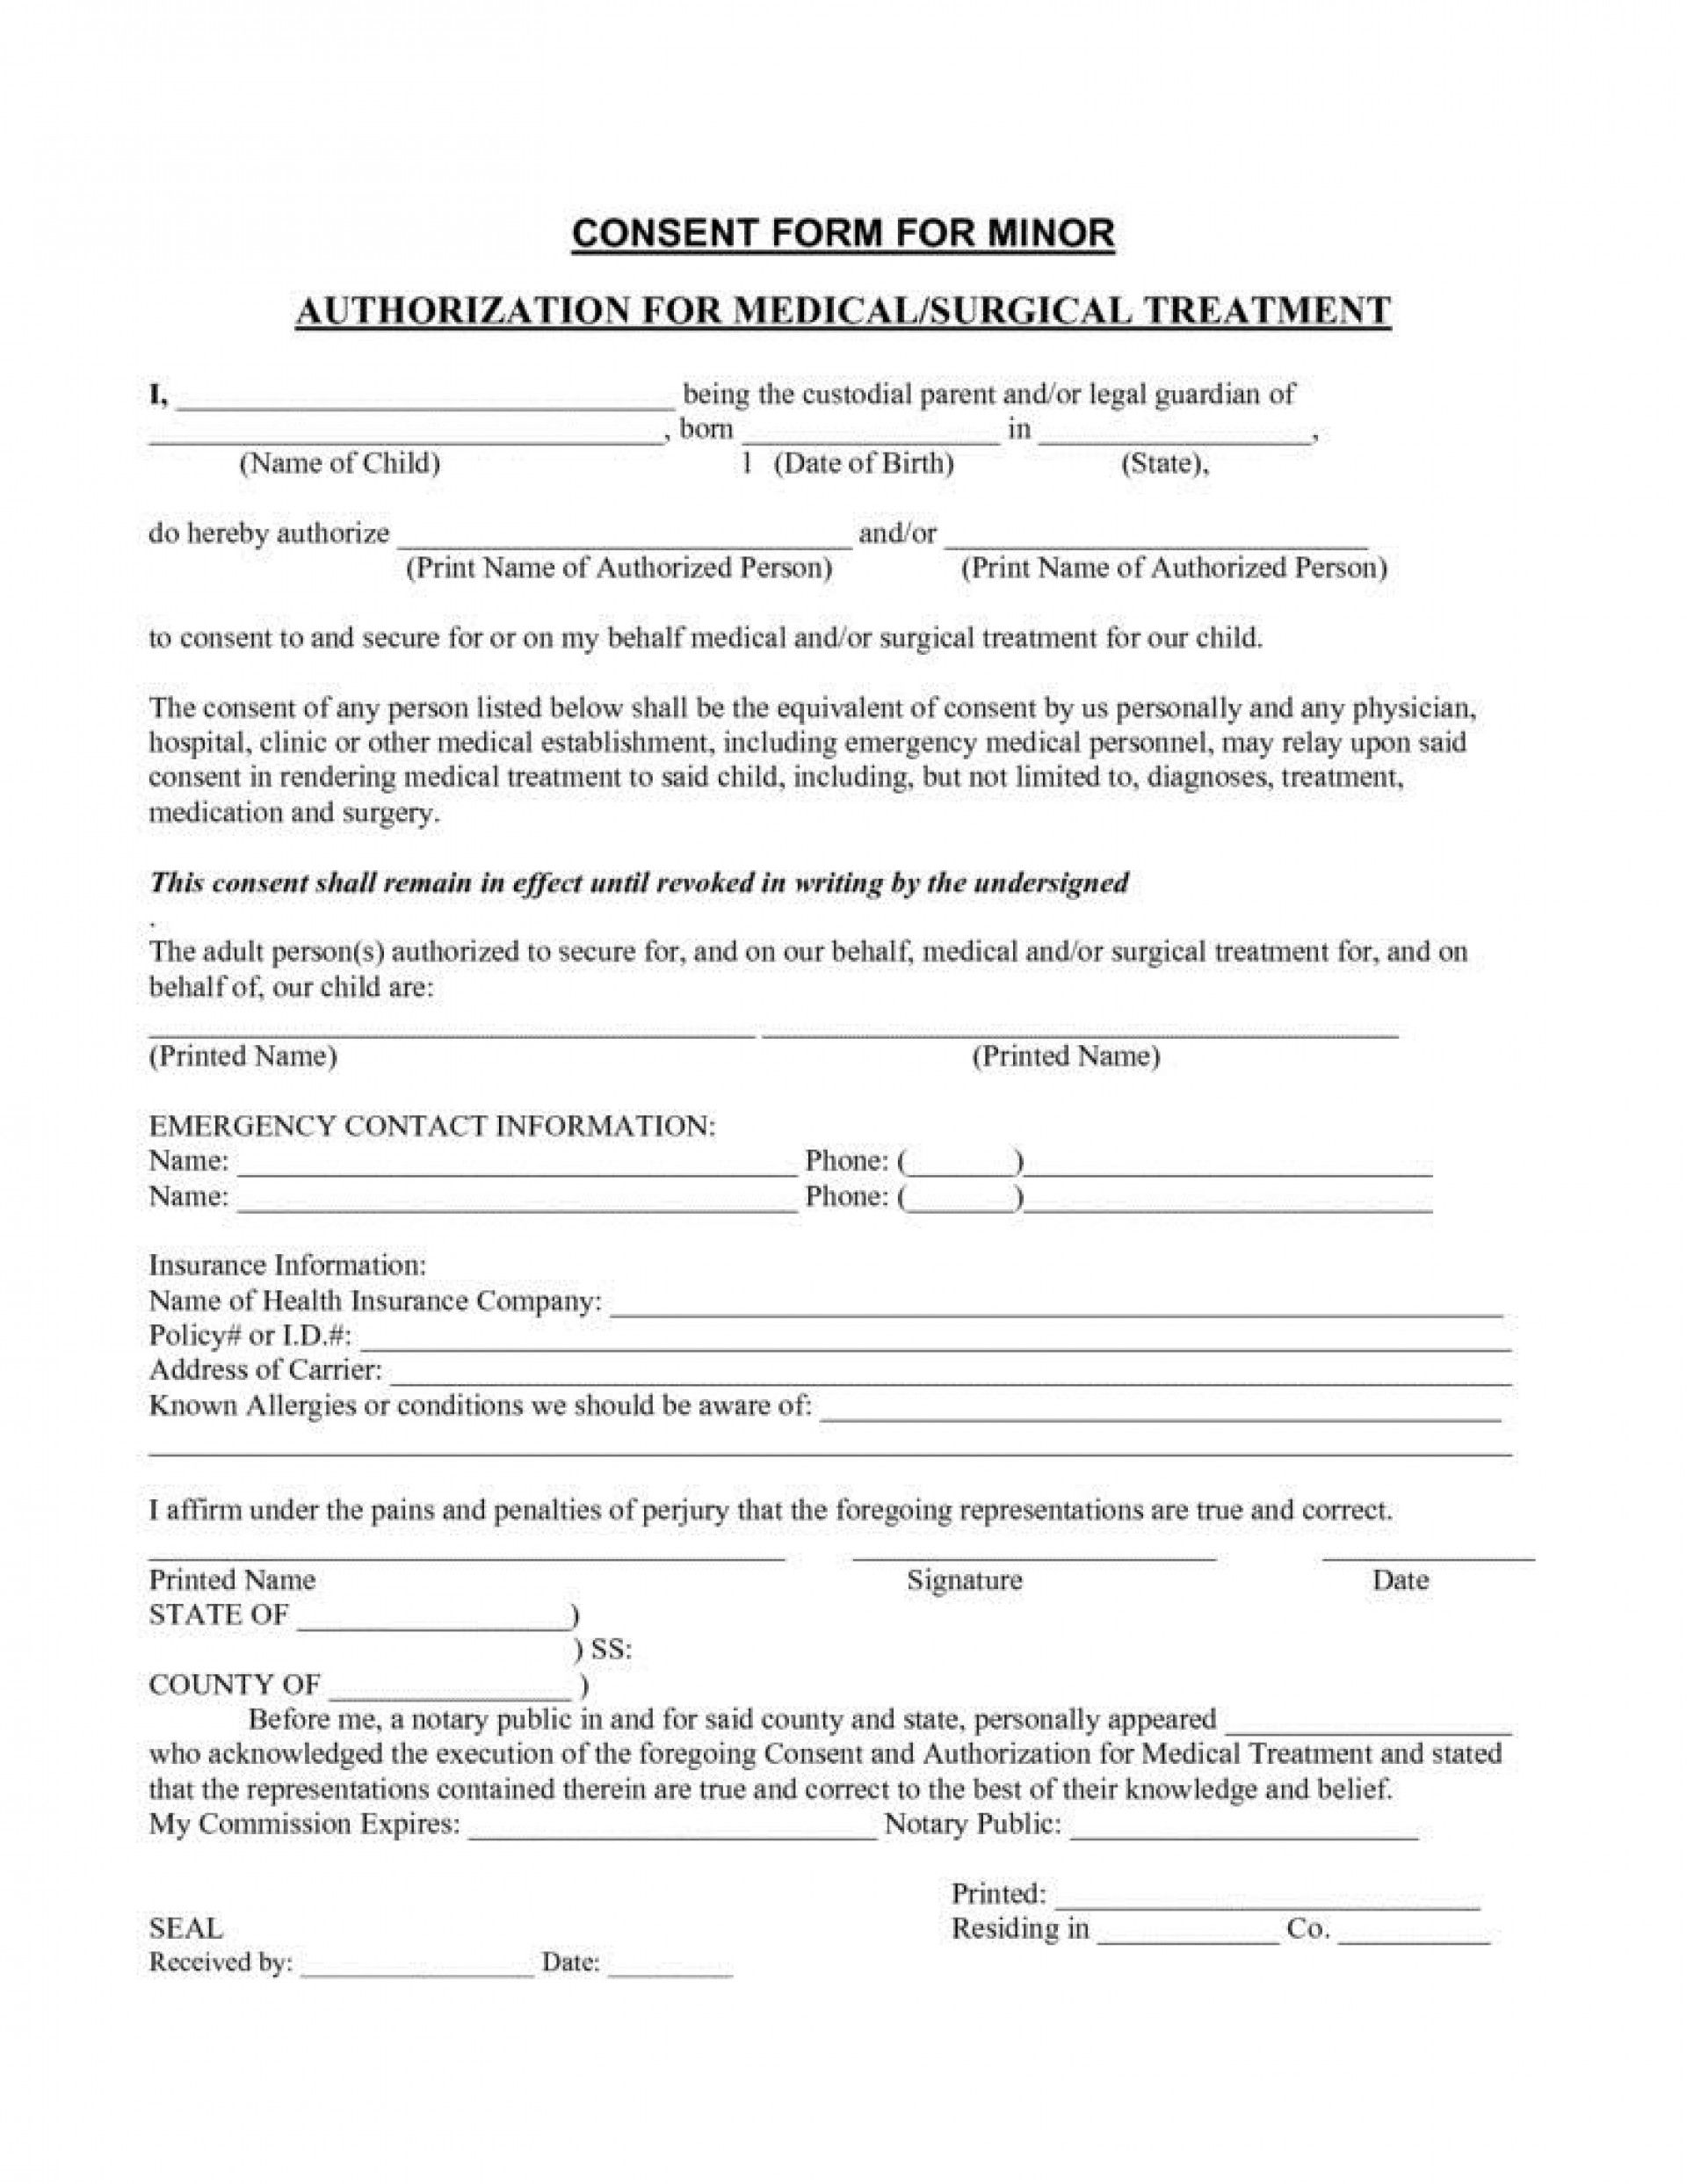 006 Amazing Medical Treatment Authorization And Consent Form Template Design Full